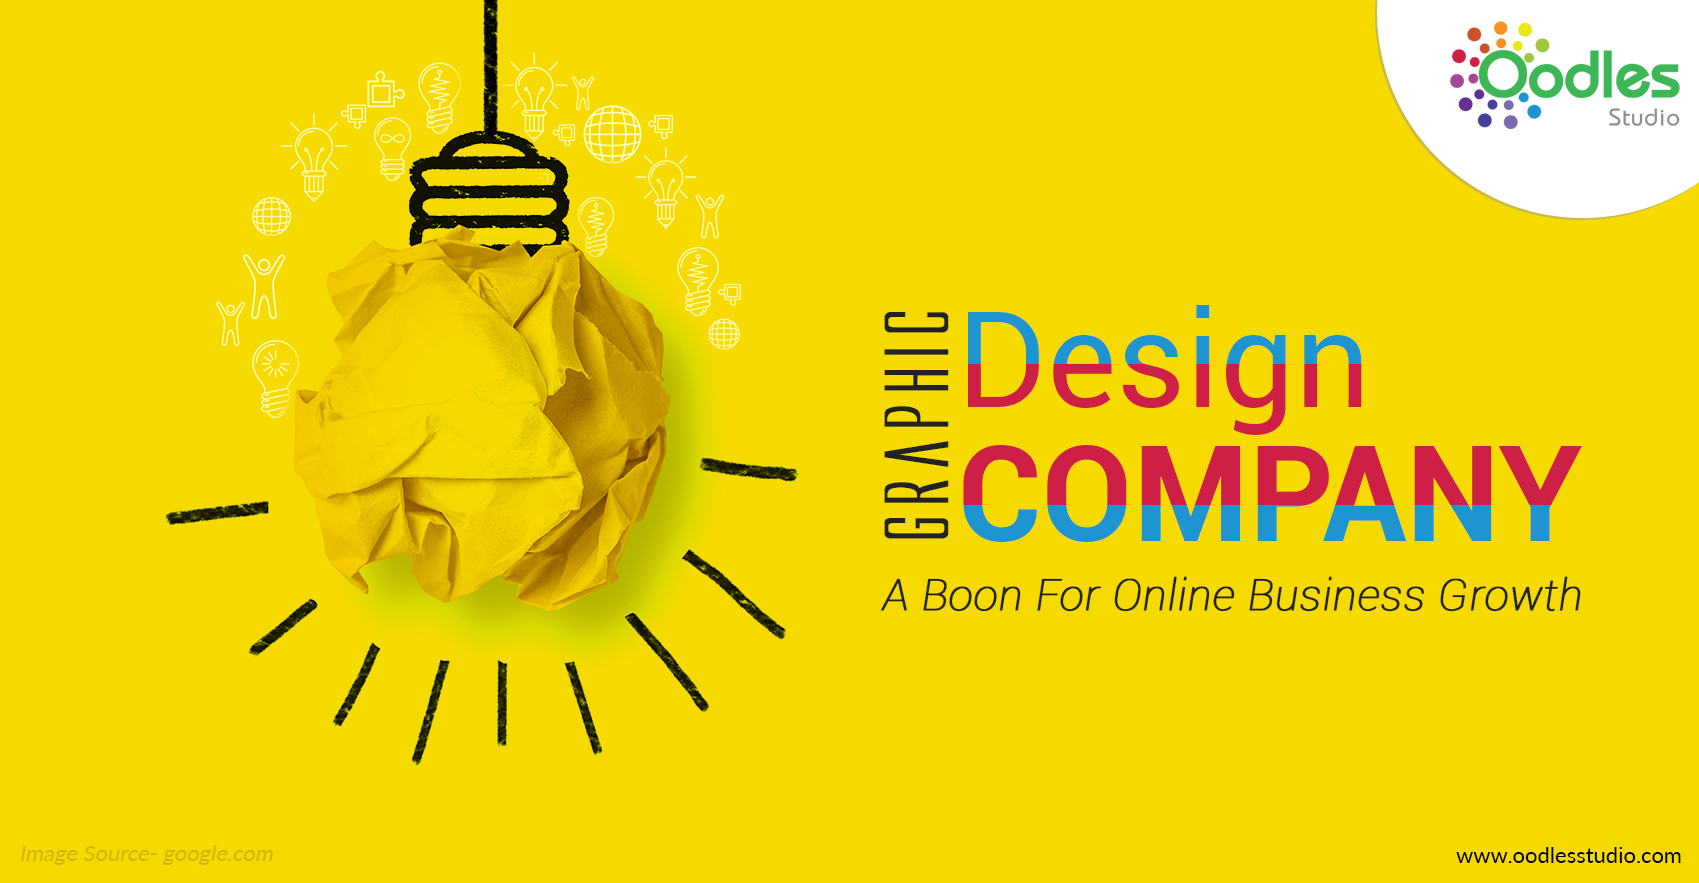 Graphic Design Company A Boon For Online Business Growth